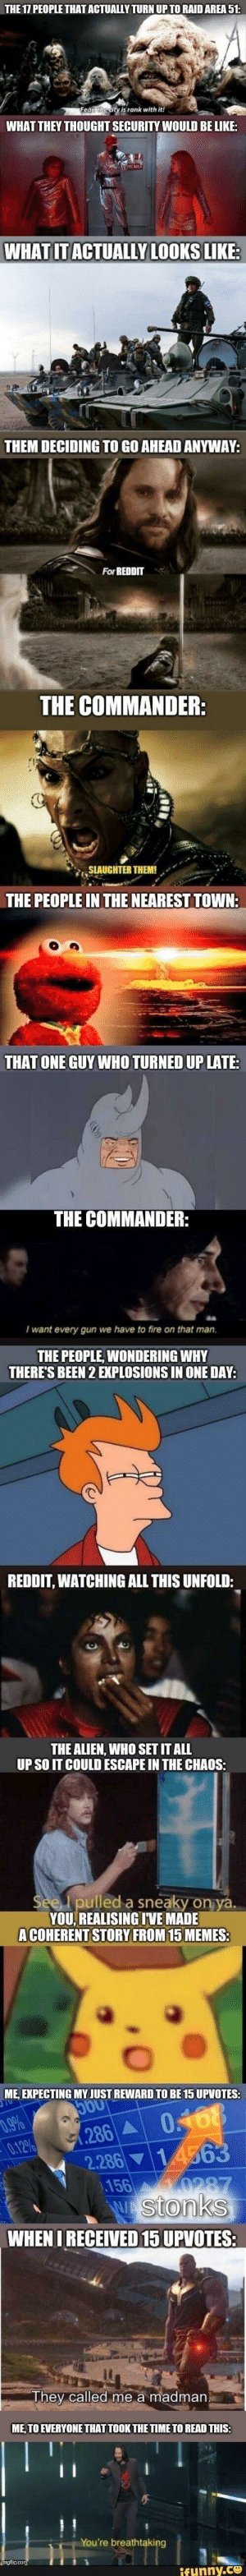 ifunny: THE 17 PEOPLE THAT ACTUALLY TURN UP TO RAID AREA 51:  Fear the city is rank with it!  WHAT THEY THOUGHT SECURITY WOULD BE LIKE:  WHAT IT ACTUALLY LOOKS LIKE:  THEM DECIDING TO GO AHEAD ANYWAY:  For REDDIT  THE COMMANDER:  SLAUGHTER THEM!  THE PEOPLE IN THE NEAREST TOWN:  THAT ONE GUY WHO TURNED UP LATE:  THE COMMANDER:  I want every gun we have to fire on that man.  THE PEOPLE, WONDERING WHY  THERE'S BEEN 2 EXPLOSIONS IN ONE DAY:  REDDIT, WATCHING ALL THIS UNFOLD:  THE ALIEN, WHO SET IT ALL  UP SO IT COULD ESCAPE IN THE CHAOS:  See, I pulled a sneaky on ya.  YOU, REALISING IVE MADE  A COHERENT STORY FROM 15 MEMES:  ME, EXPECTING MY JUST REWARD TO BE 15 UPVOTES:  5O0  0.9%  0.12%  0.168  1.286 A  2.286 14563  156  0287  Wstonks  WHEN I RECEIVED 15 UPVOTES:  They called me a madman.  ME, TO EVERYONE THAT TOOK THE TIME TO READ THIS:  You're breathtaking  umgflip.com  ifunny.co ifunny